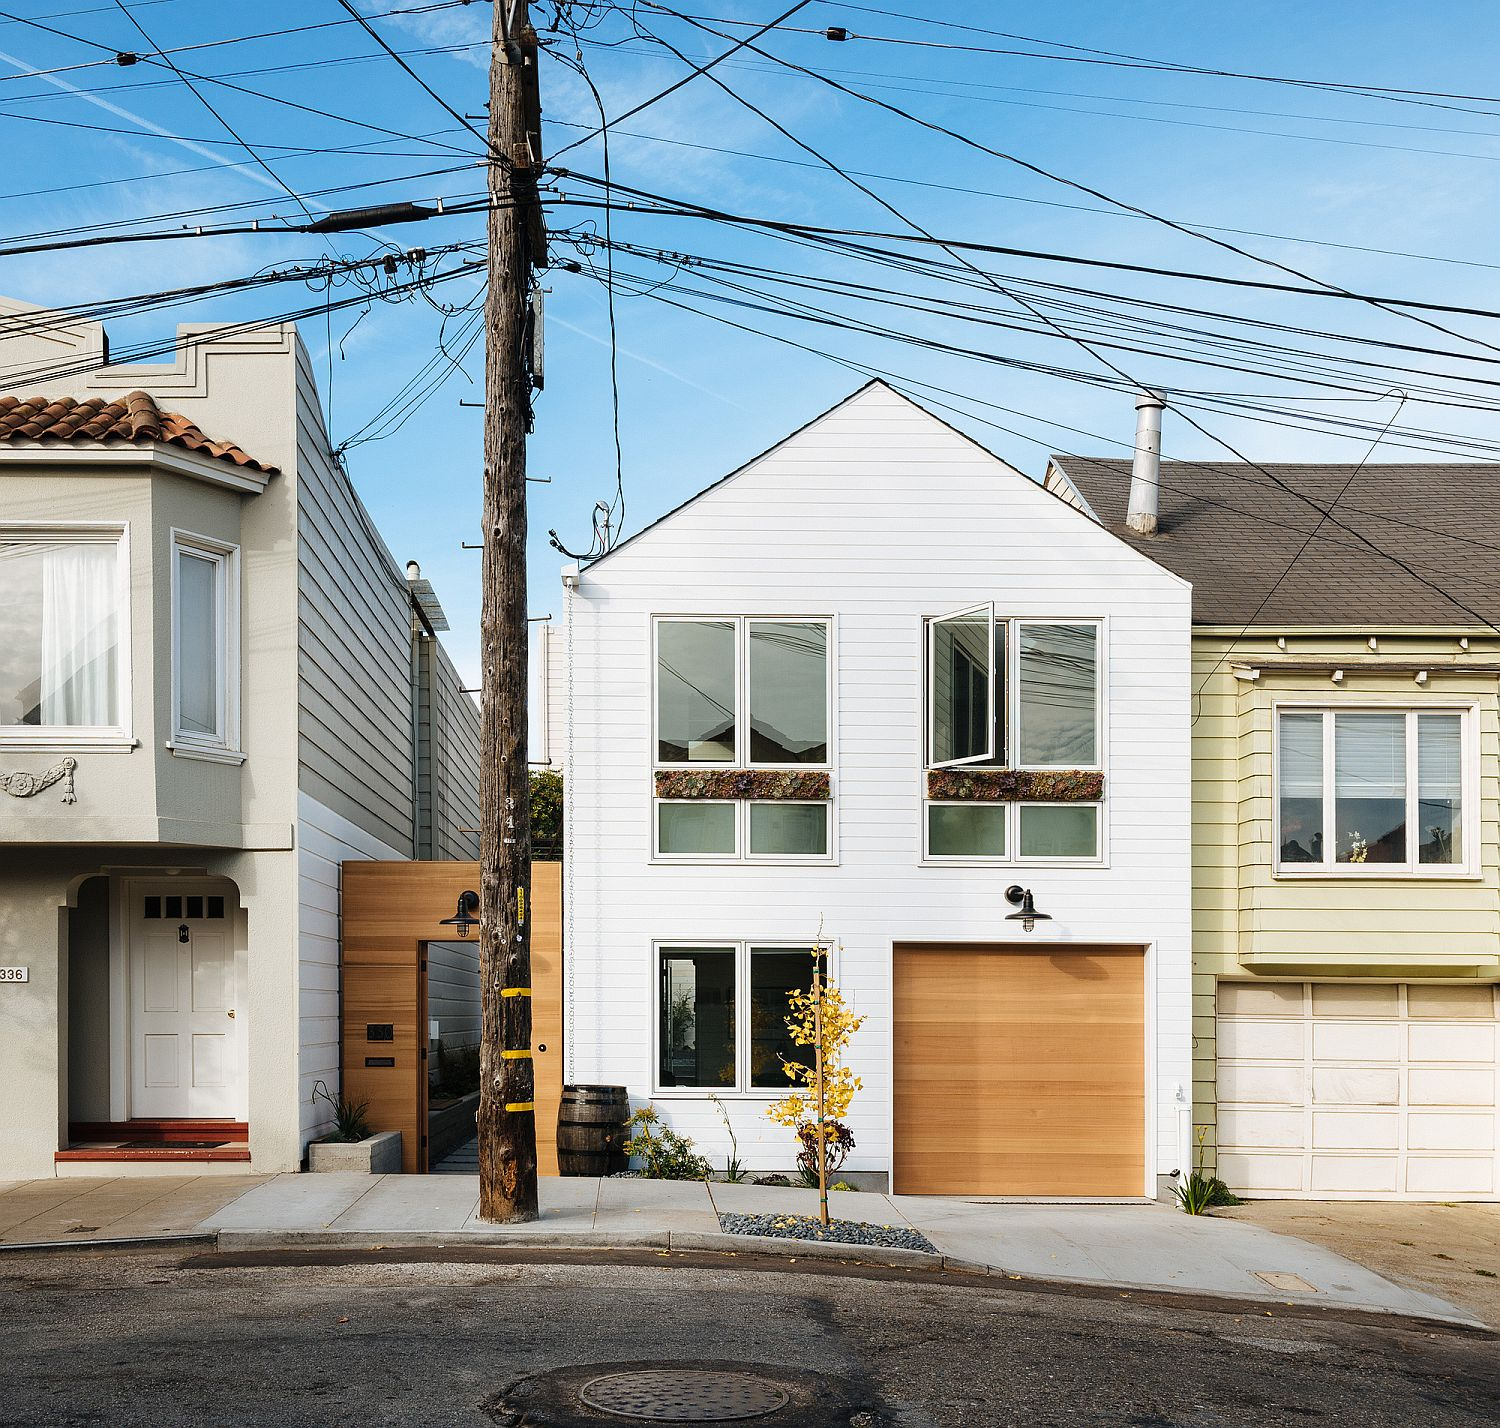 Revamped and renovated home on Banks Street, San Francisco